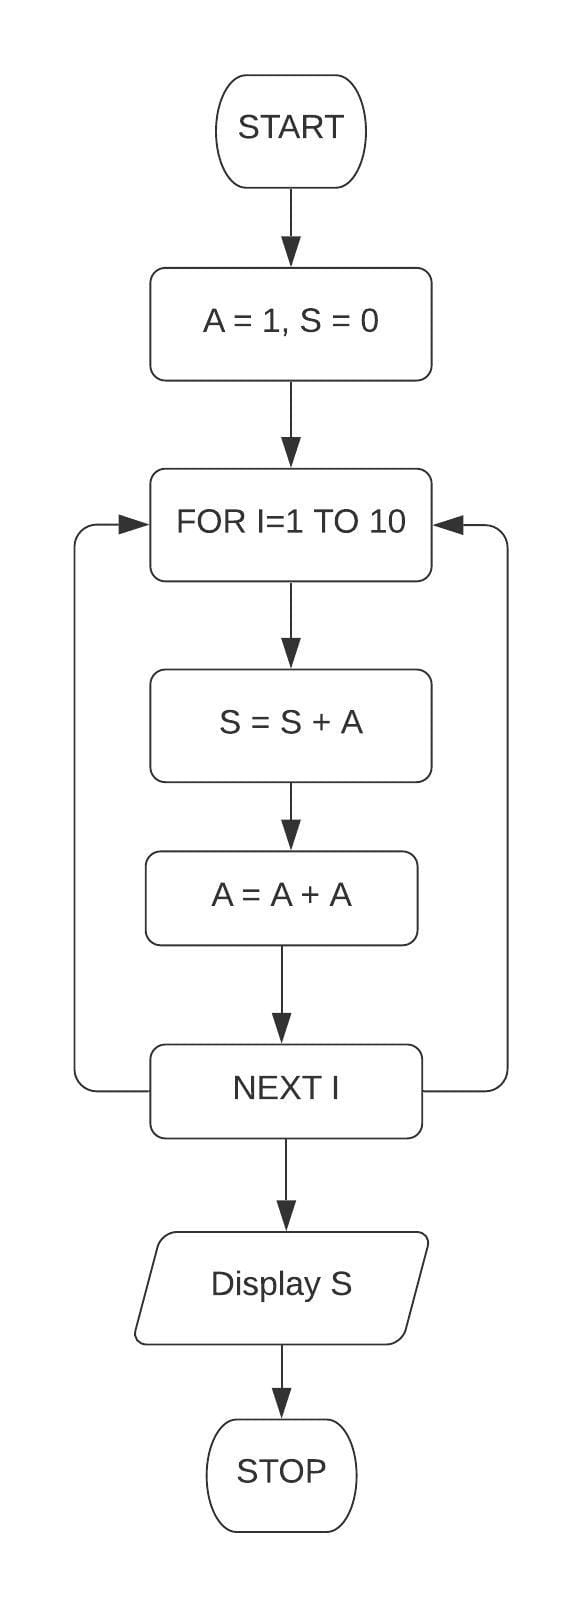 Draw a flowchart and write a program in QBASIC to print the first 10 terms of the series: S = 1 + 2 + 4 + 8. Class 7 ICSE Understanding Computer Studies